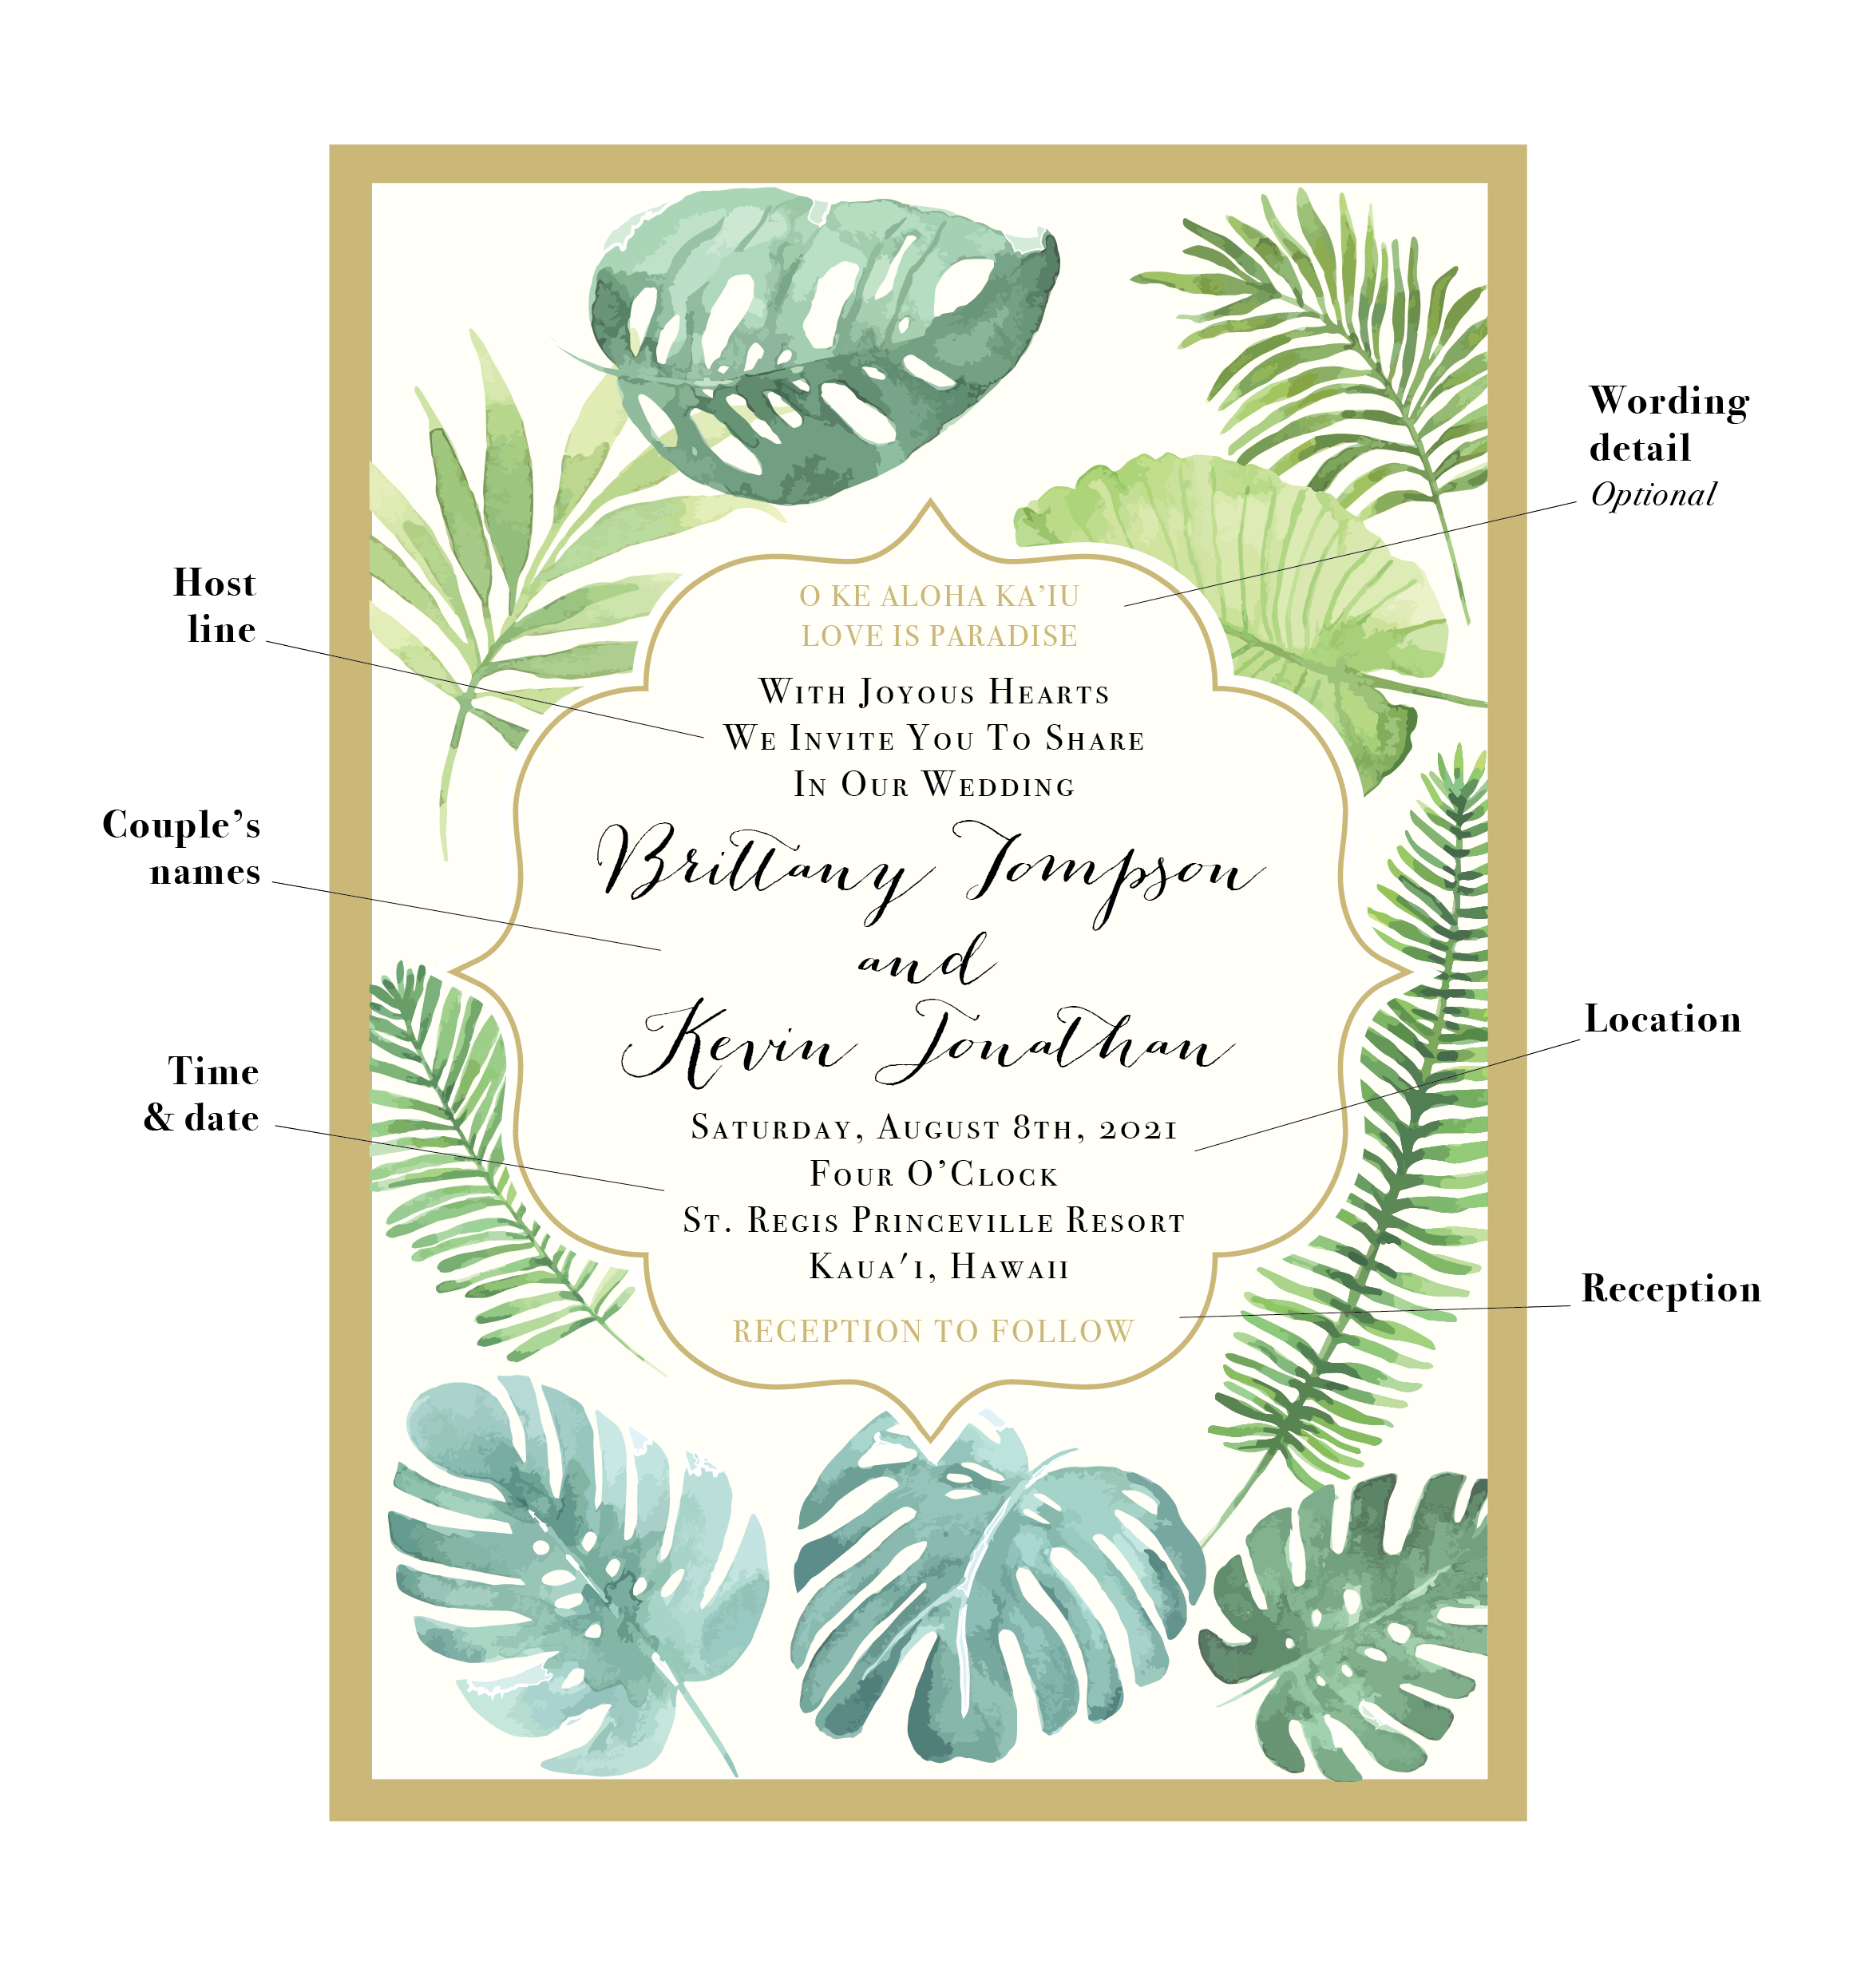 How To Word Your Destination Wedding Invites Beacon Lane How To Word Your Destination Wedding Invites